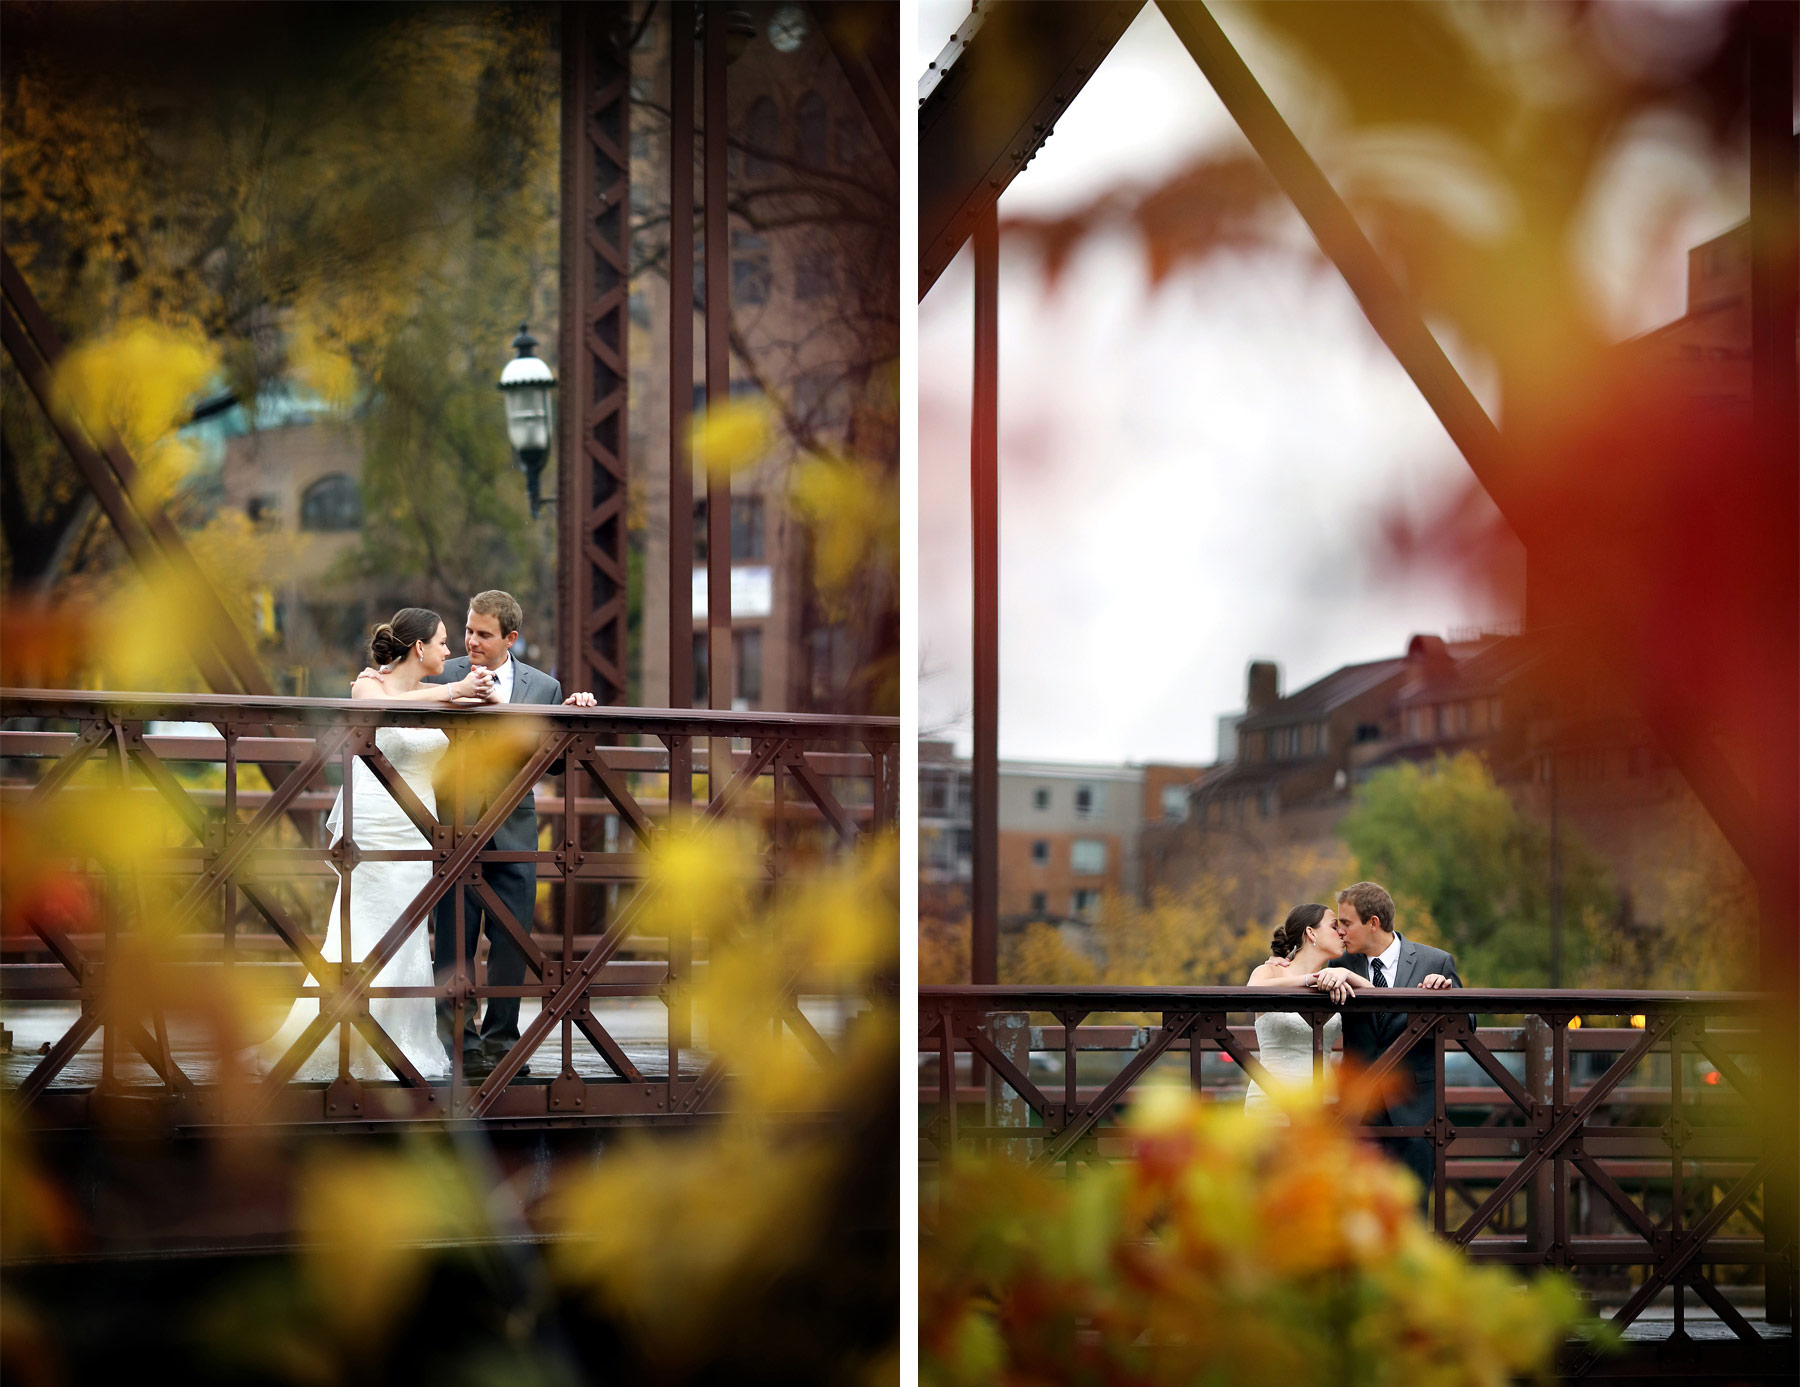 04-Minneapolis-Minnesota-Wedding-Photography-Downtown-Rain-Nicollet-Island-Pavilion-Fall-Colors-Fall-Leaves-Autumn-First-Look-Kalley-and-Ben.jpg